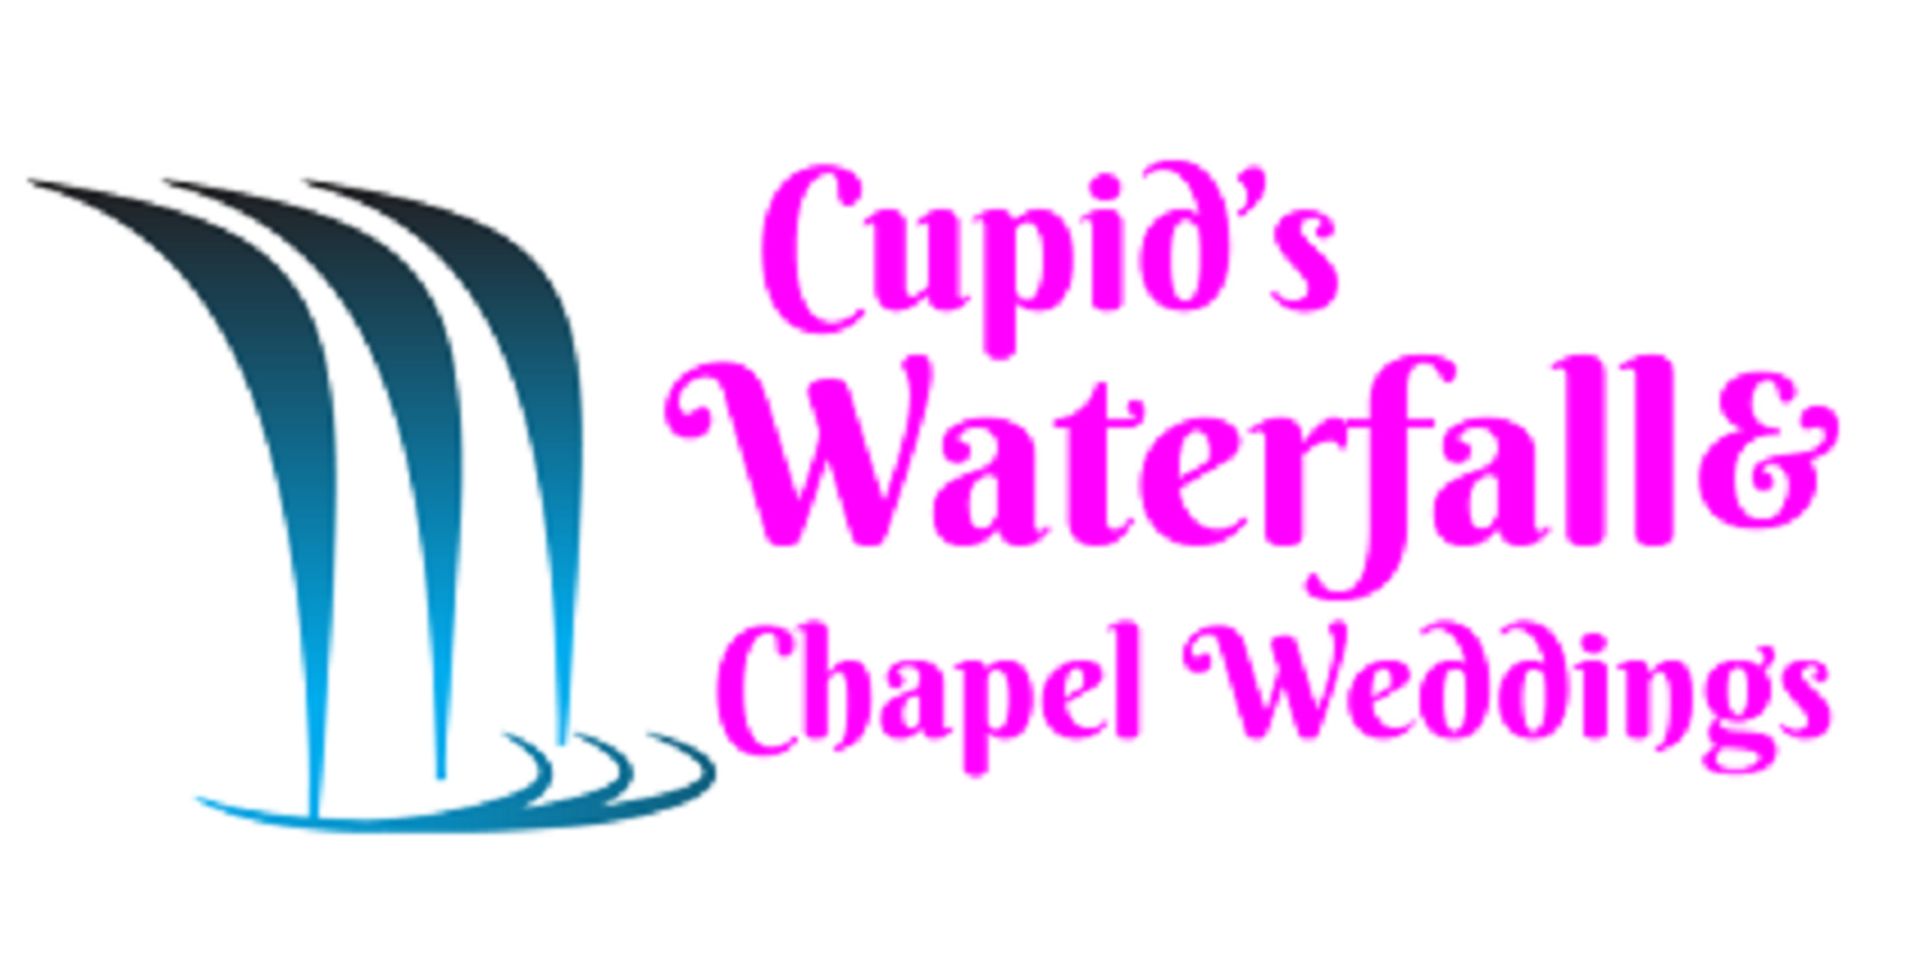 Cupid's Waterfall and Chapel Weddings